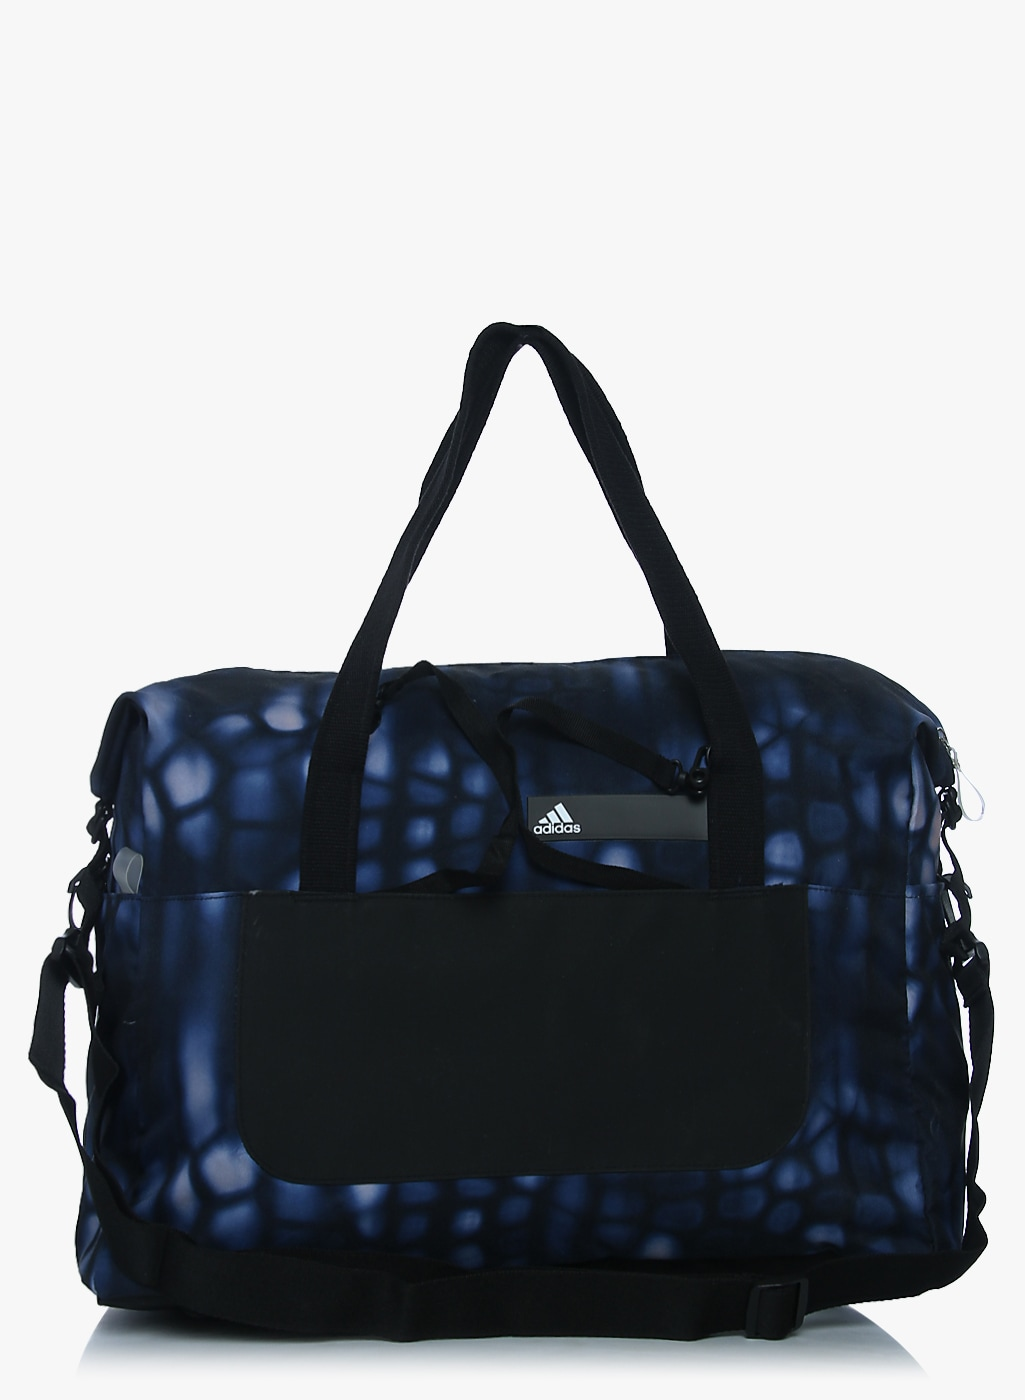 c0569cab96 Adidas Polyester Bags - Buy Adidas Polyester Bags online in India